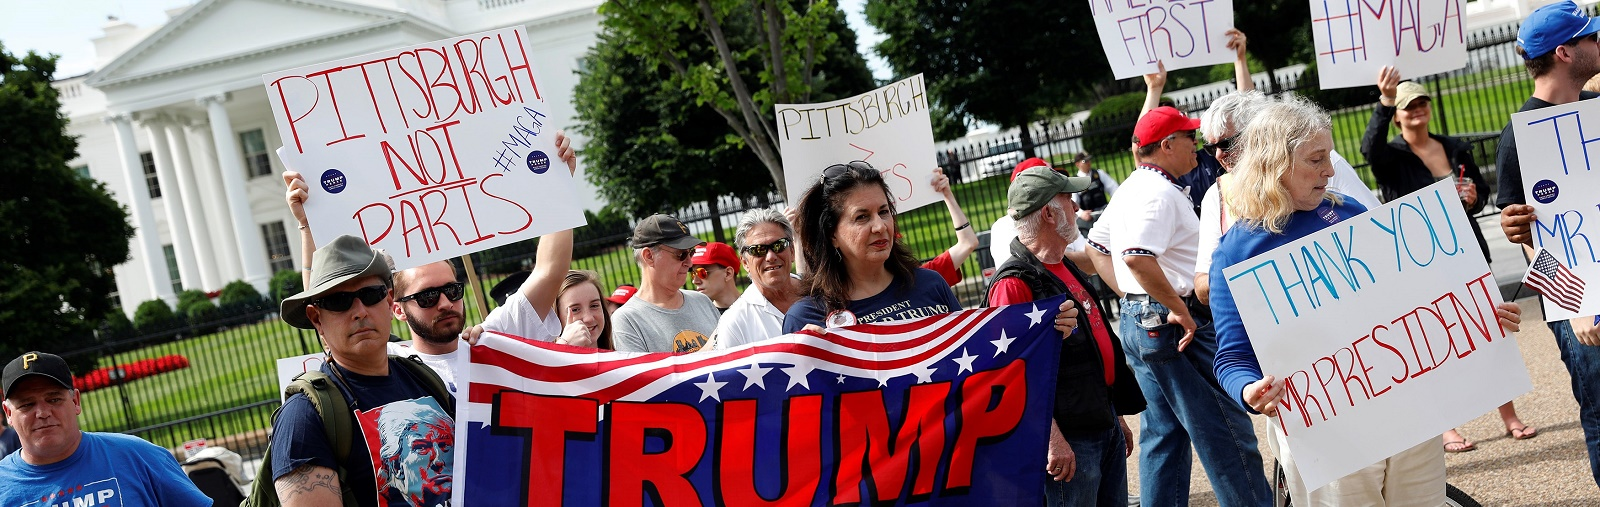 Supporters of US President Donald Trump and his policies at a 'Pittsburgh Not Paris' rally on Saturday. (Photo: Saul Loeb/Getty Images)